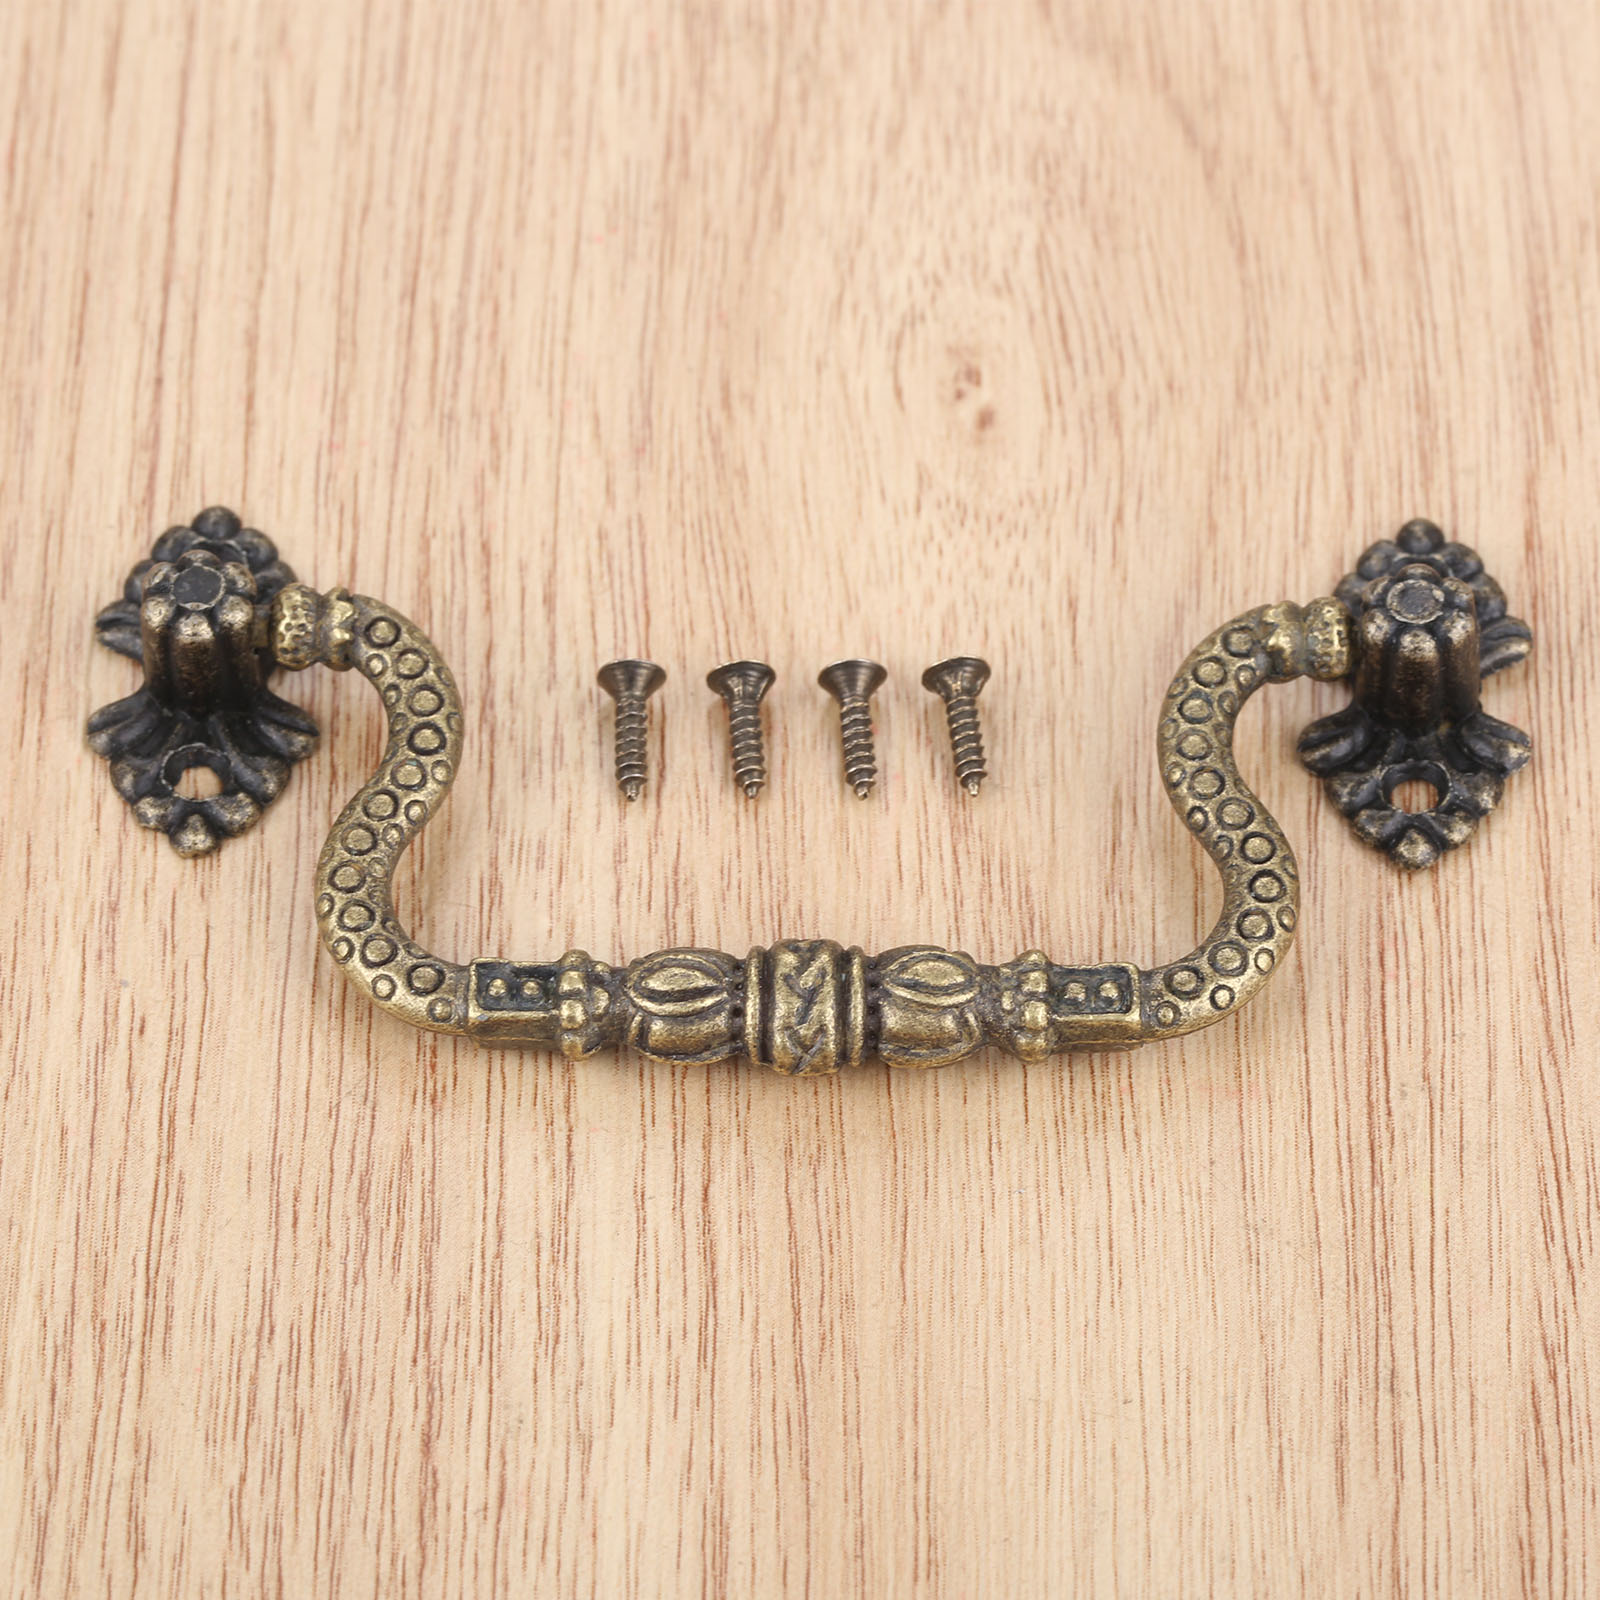 Image of: Dreld 1pc Antique Bronze Furniture Handles Jewelry Box Cabinet Pulls Suitcase Holder Kitchen Drawer Door Handle Knobs 83 42mm Leather Bag